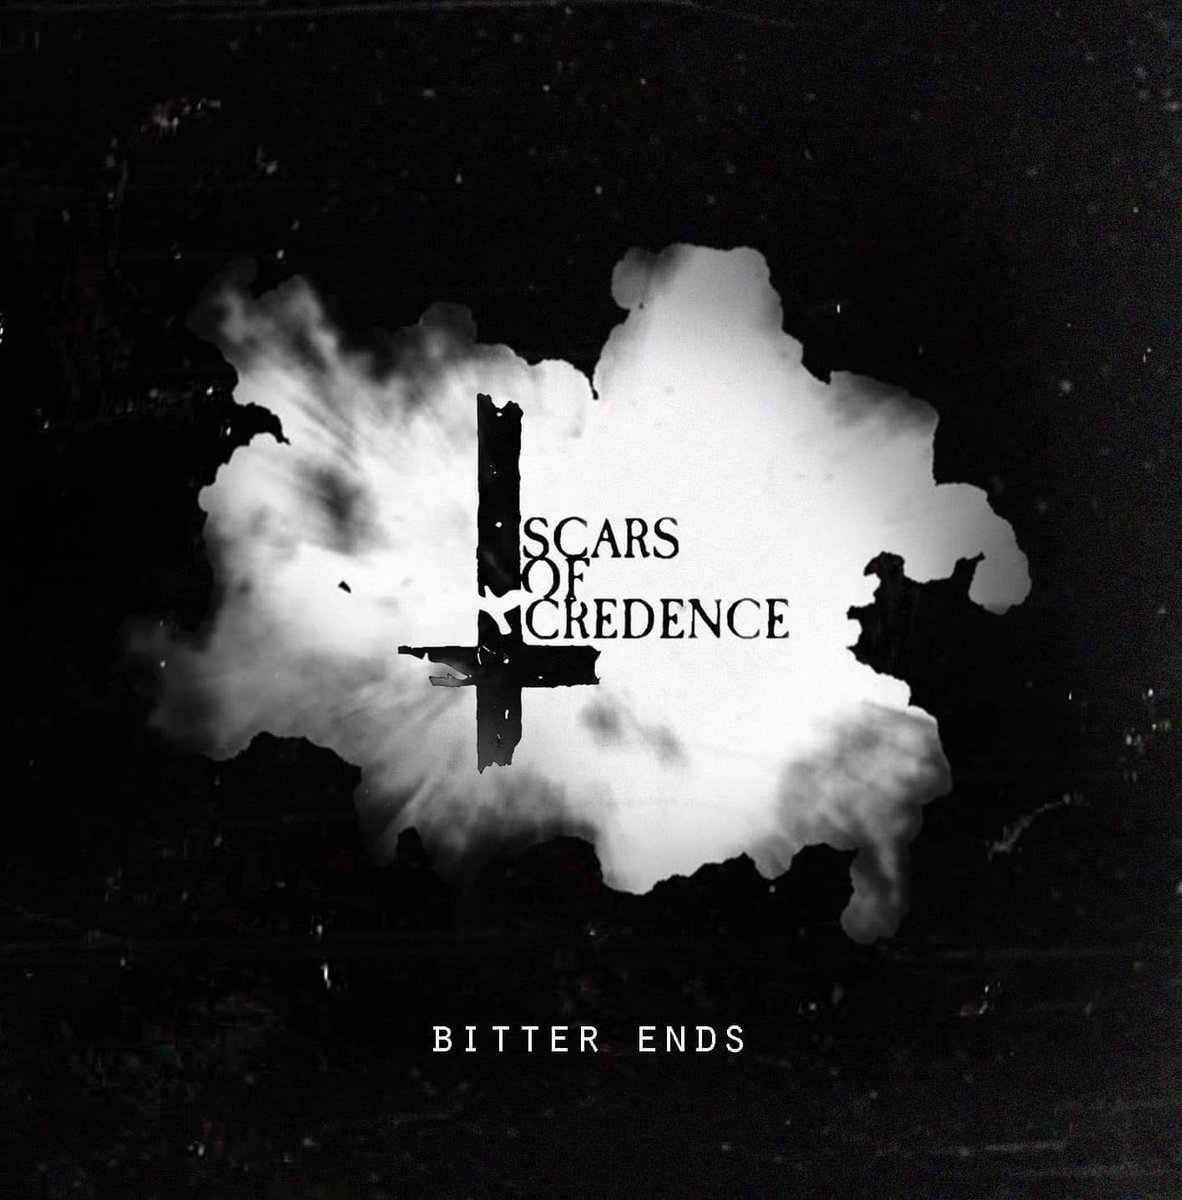 Scars of Credence - Bitter Ends [EP] (2018)